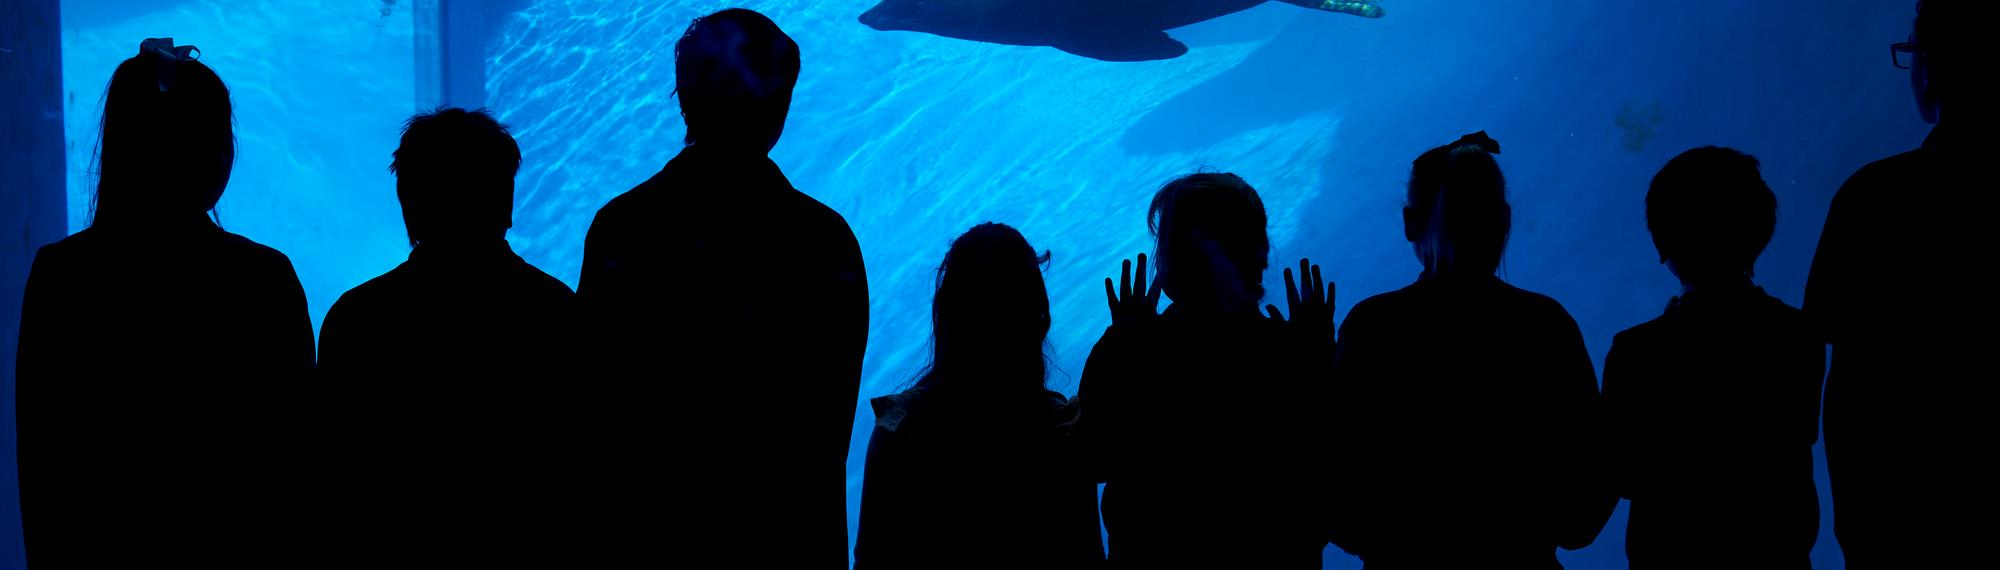 Silhouette of students looking through the under water viewing glass at a seal swimming by.